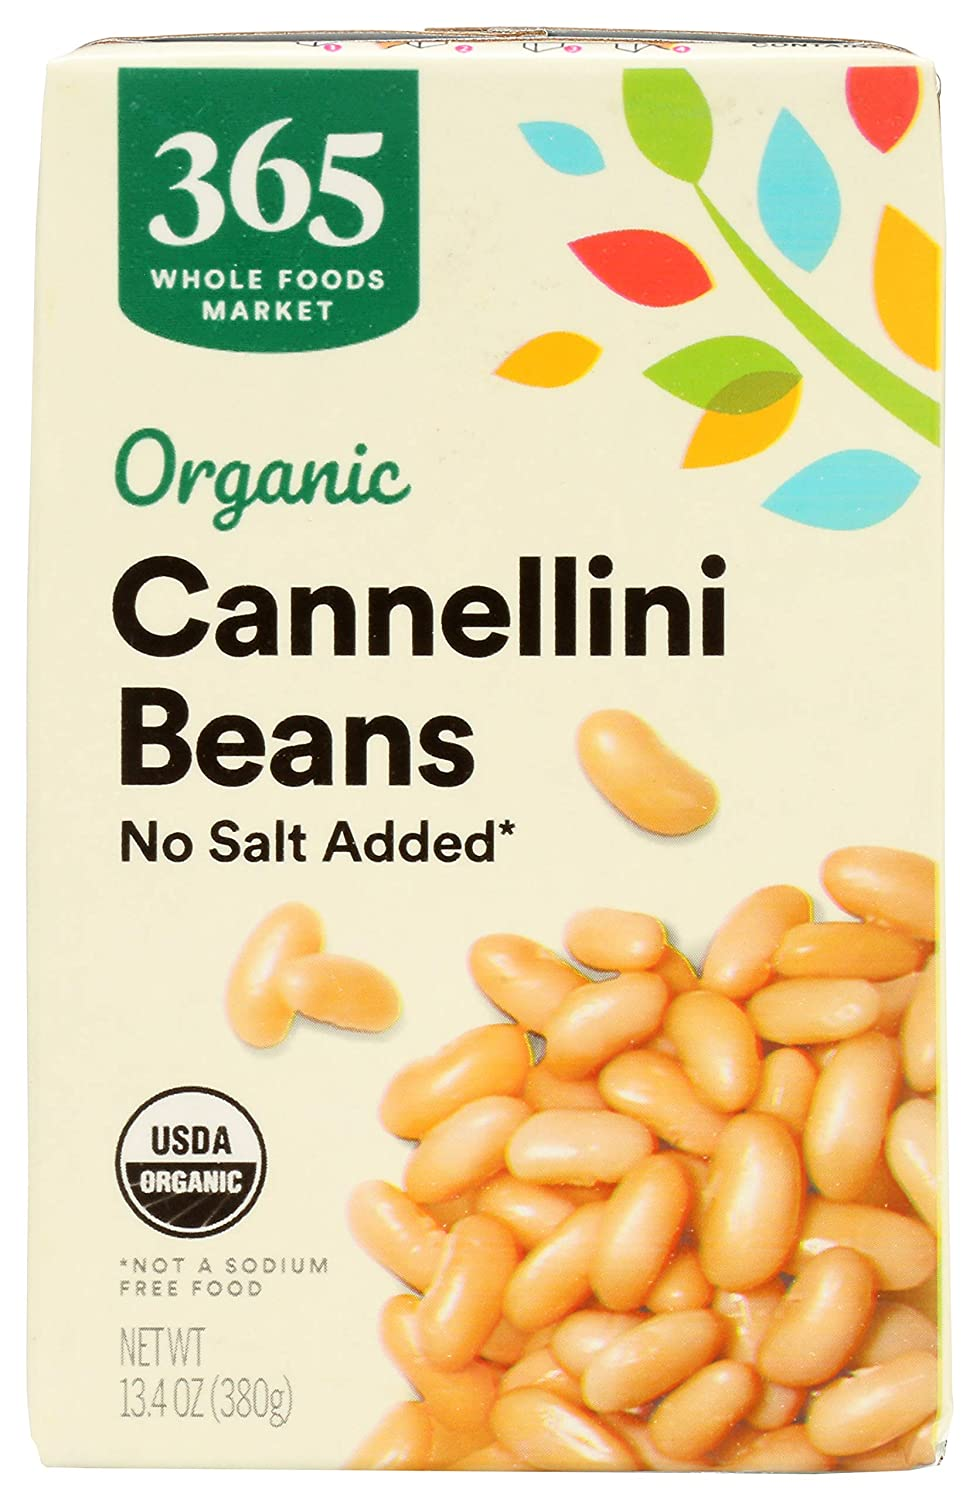 365 by Whole Foods Market Beans Super sale period limited Organi Max 69% OFF Added No Salt Cannellini